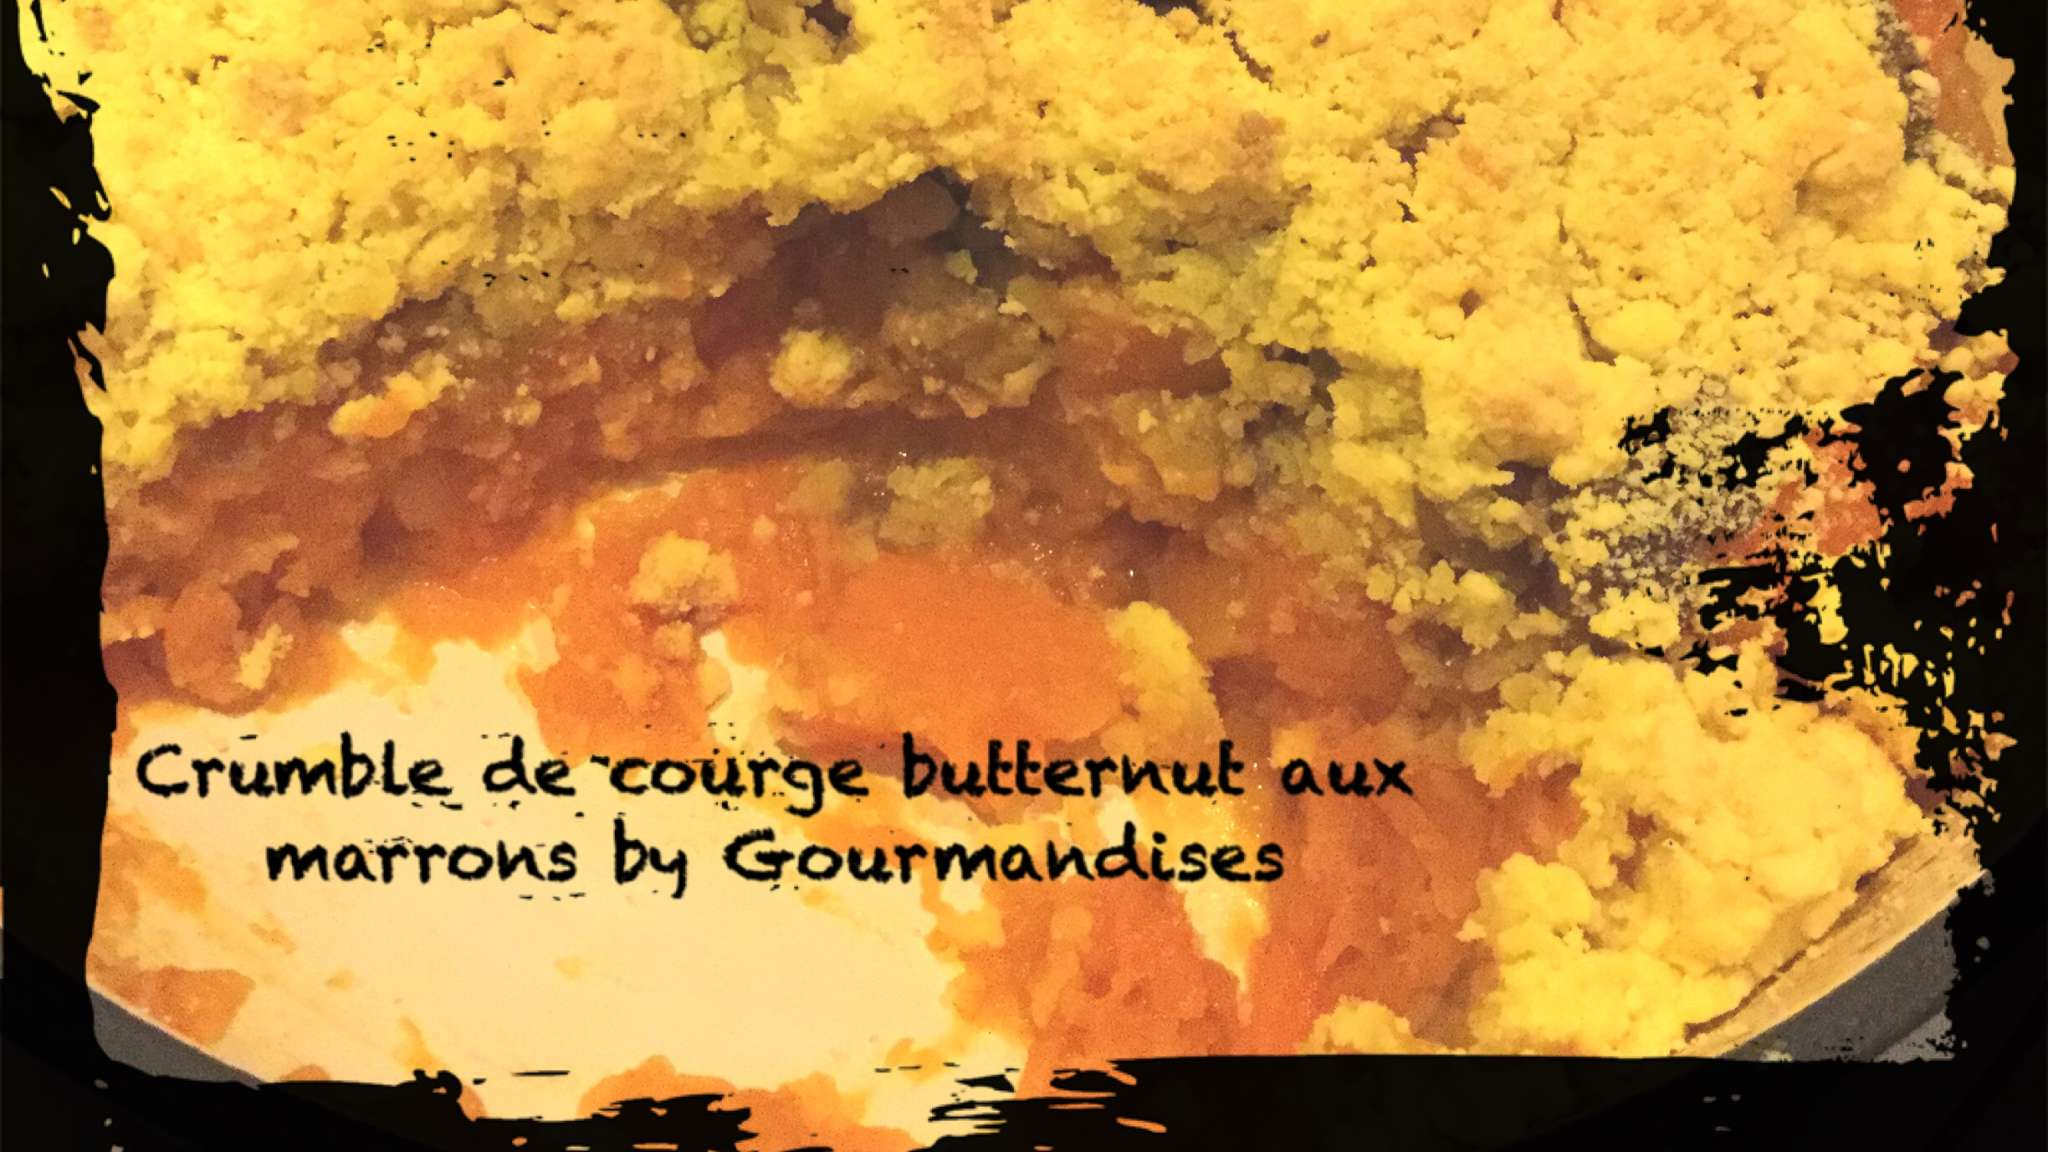 Crumble de butternut aux marrons